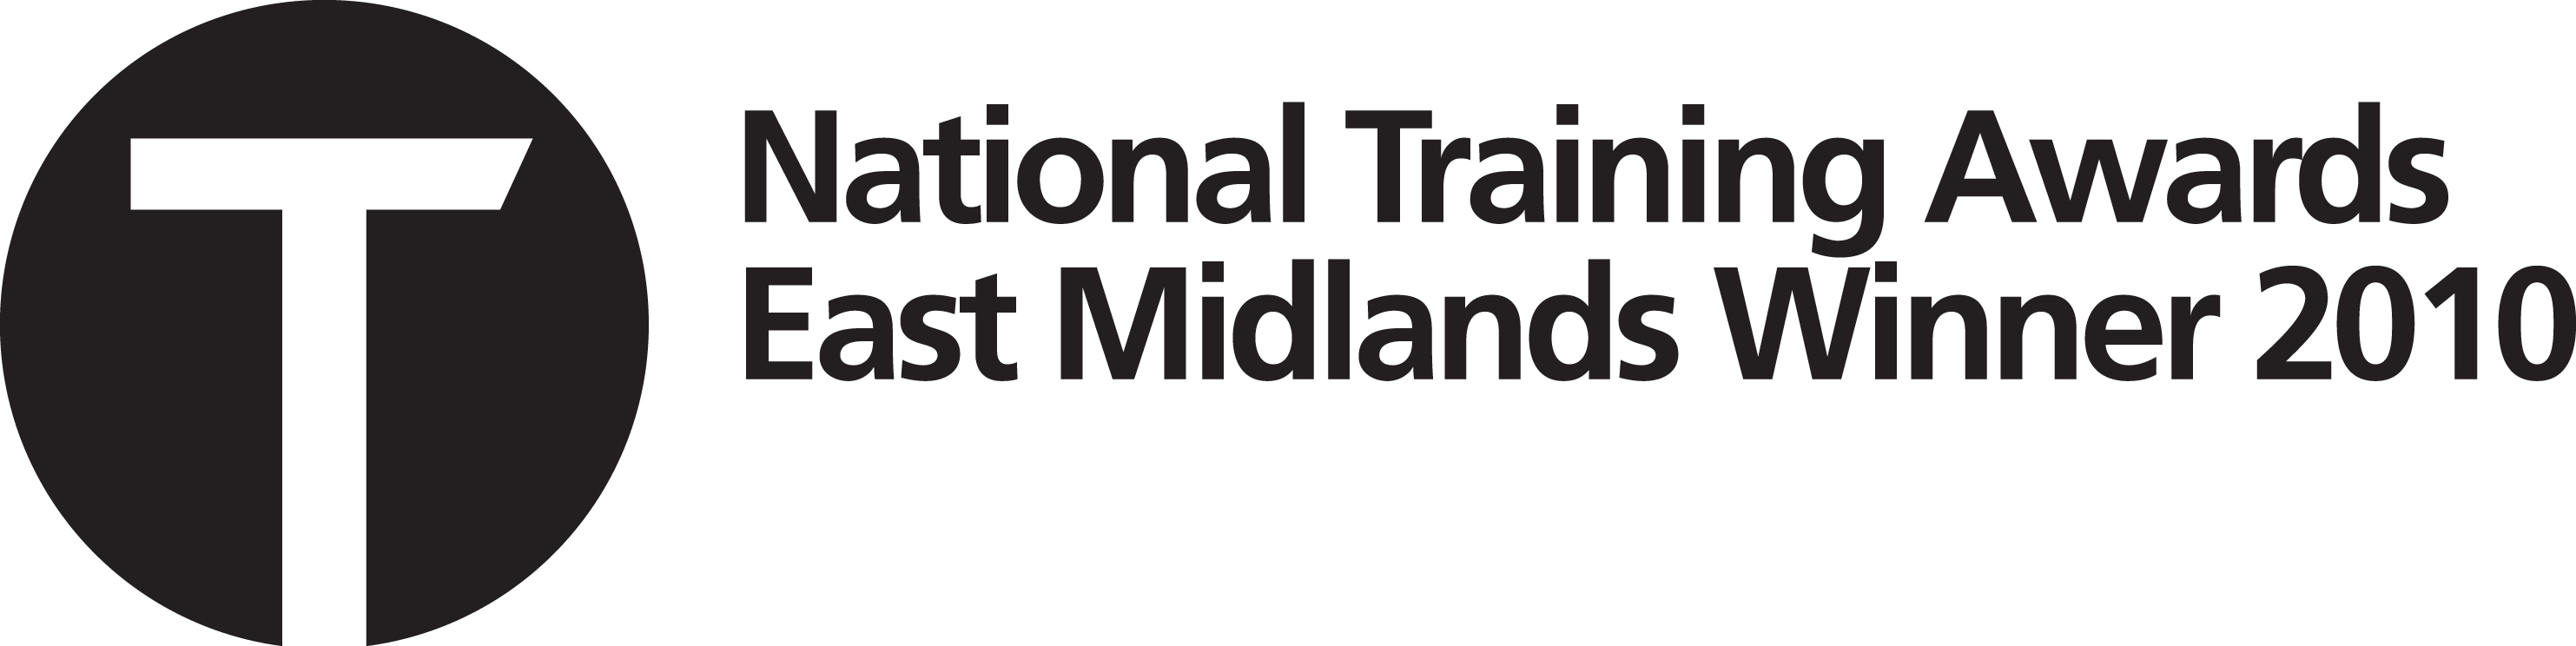 NTA_East_Midlands_Winner_2010